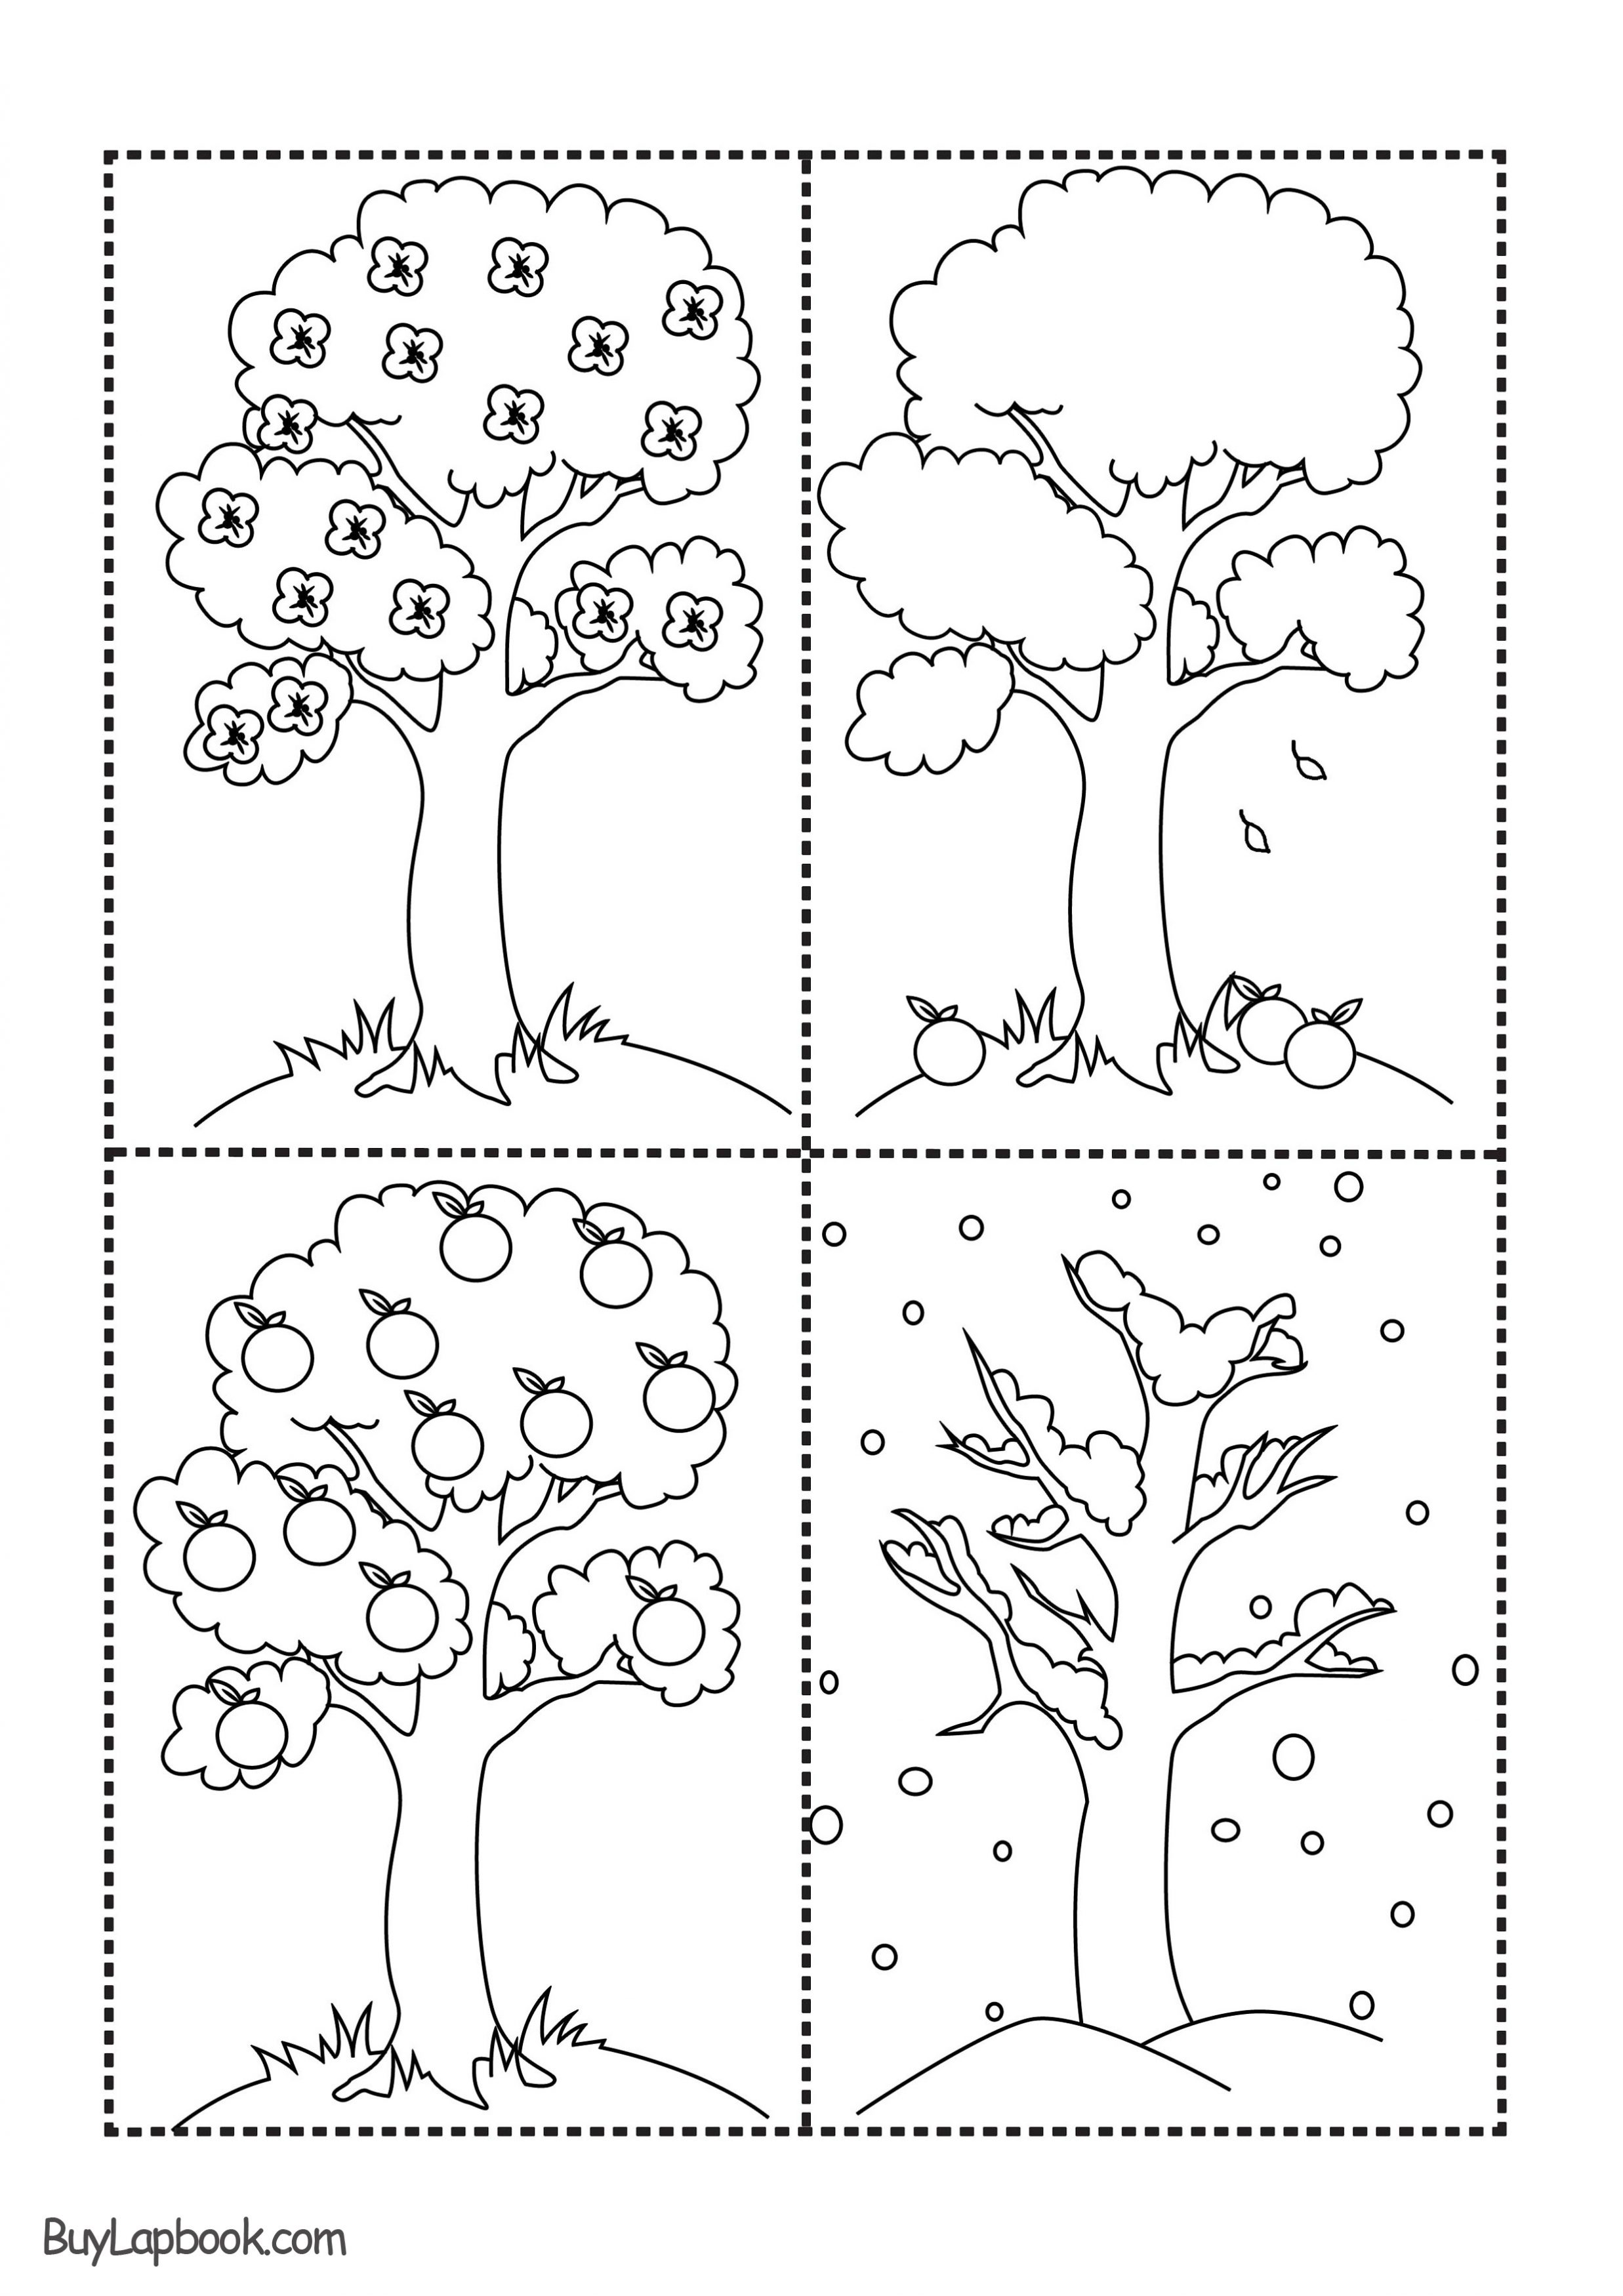 Seasons of an Apple Tree